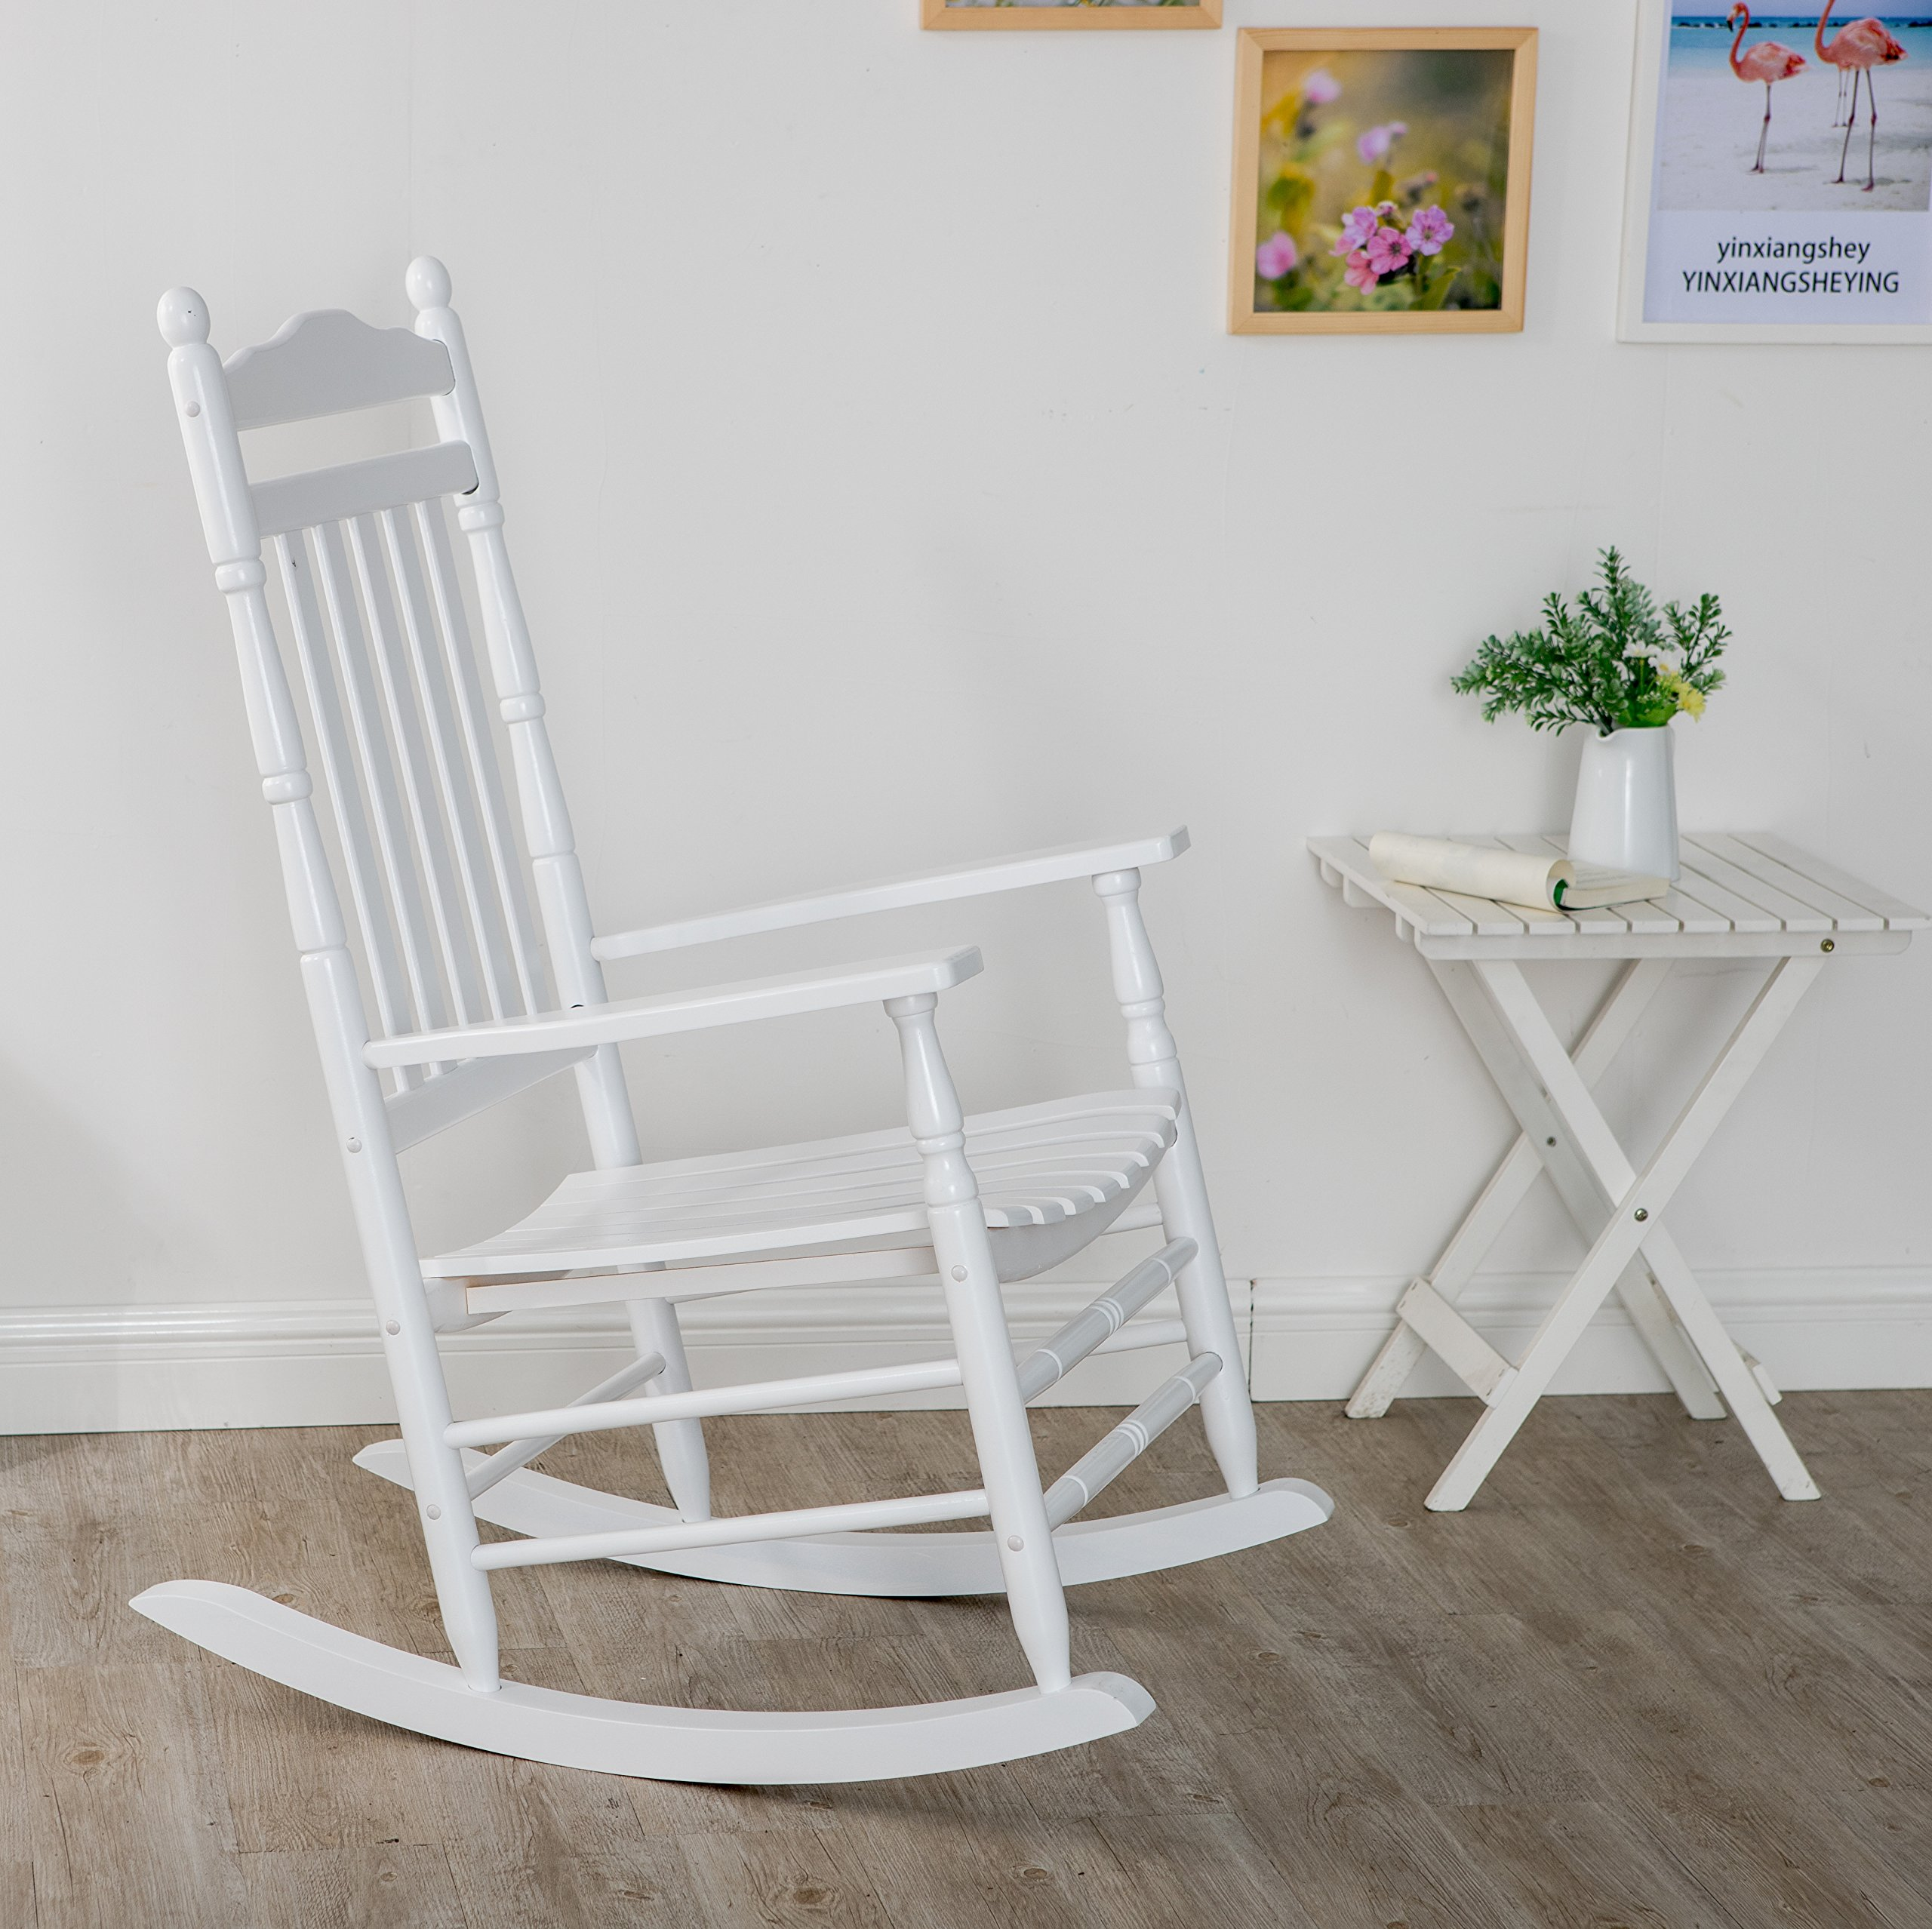 B&Z KD-22W Wooden Rocking chair Porch Rocker White Outdoor Traditional Indoor by B&Z (Image #2)